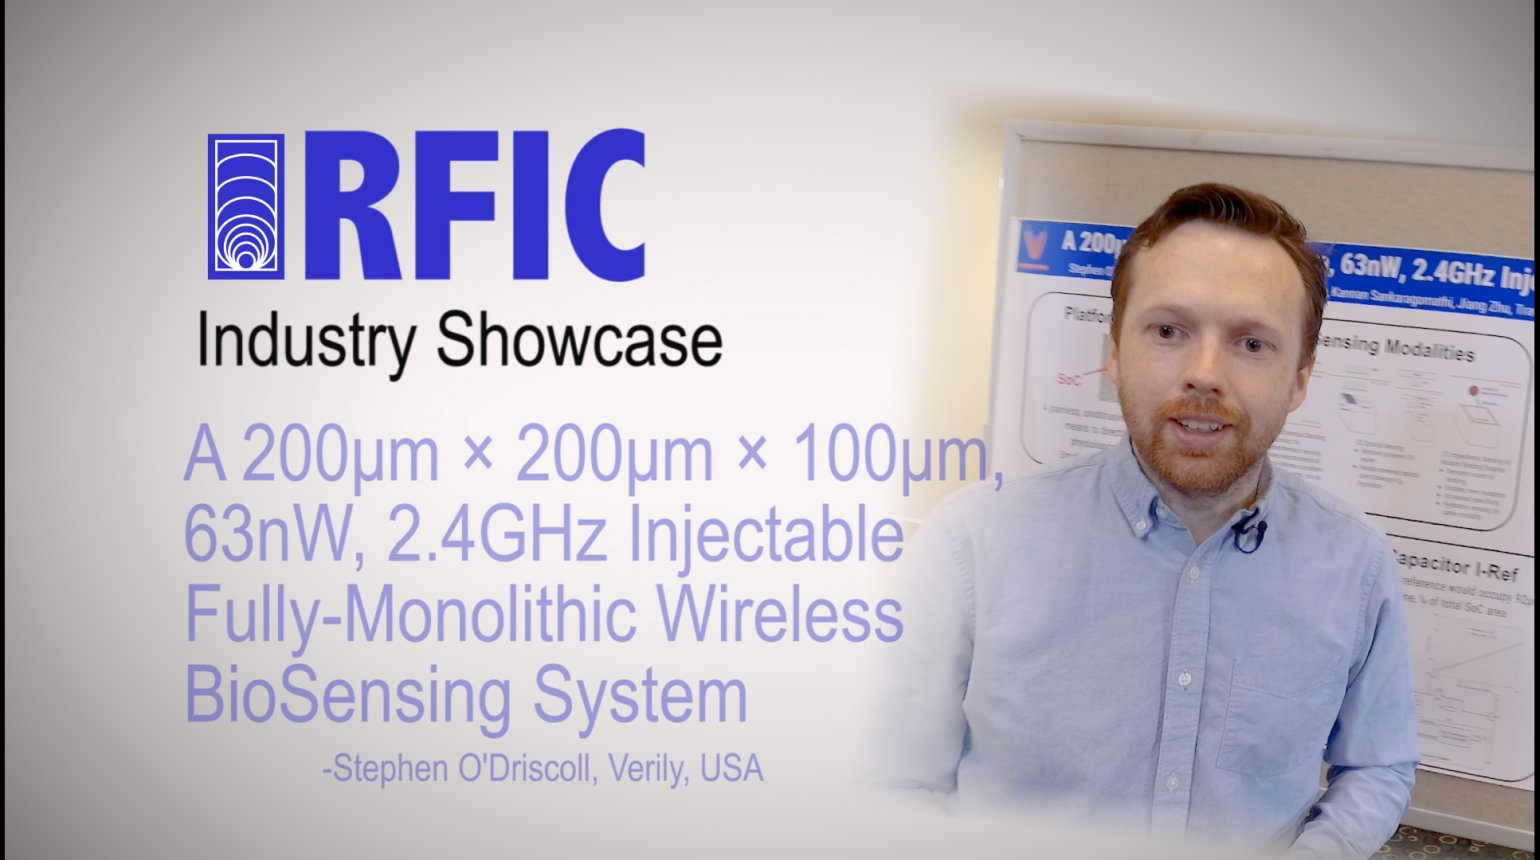 A 200um x 200um x 100um, 63nW, 2.4GHz Injectable Fully-Monolithic Wireless BioSensing System: RFIC Industry Showcase 2017